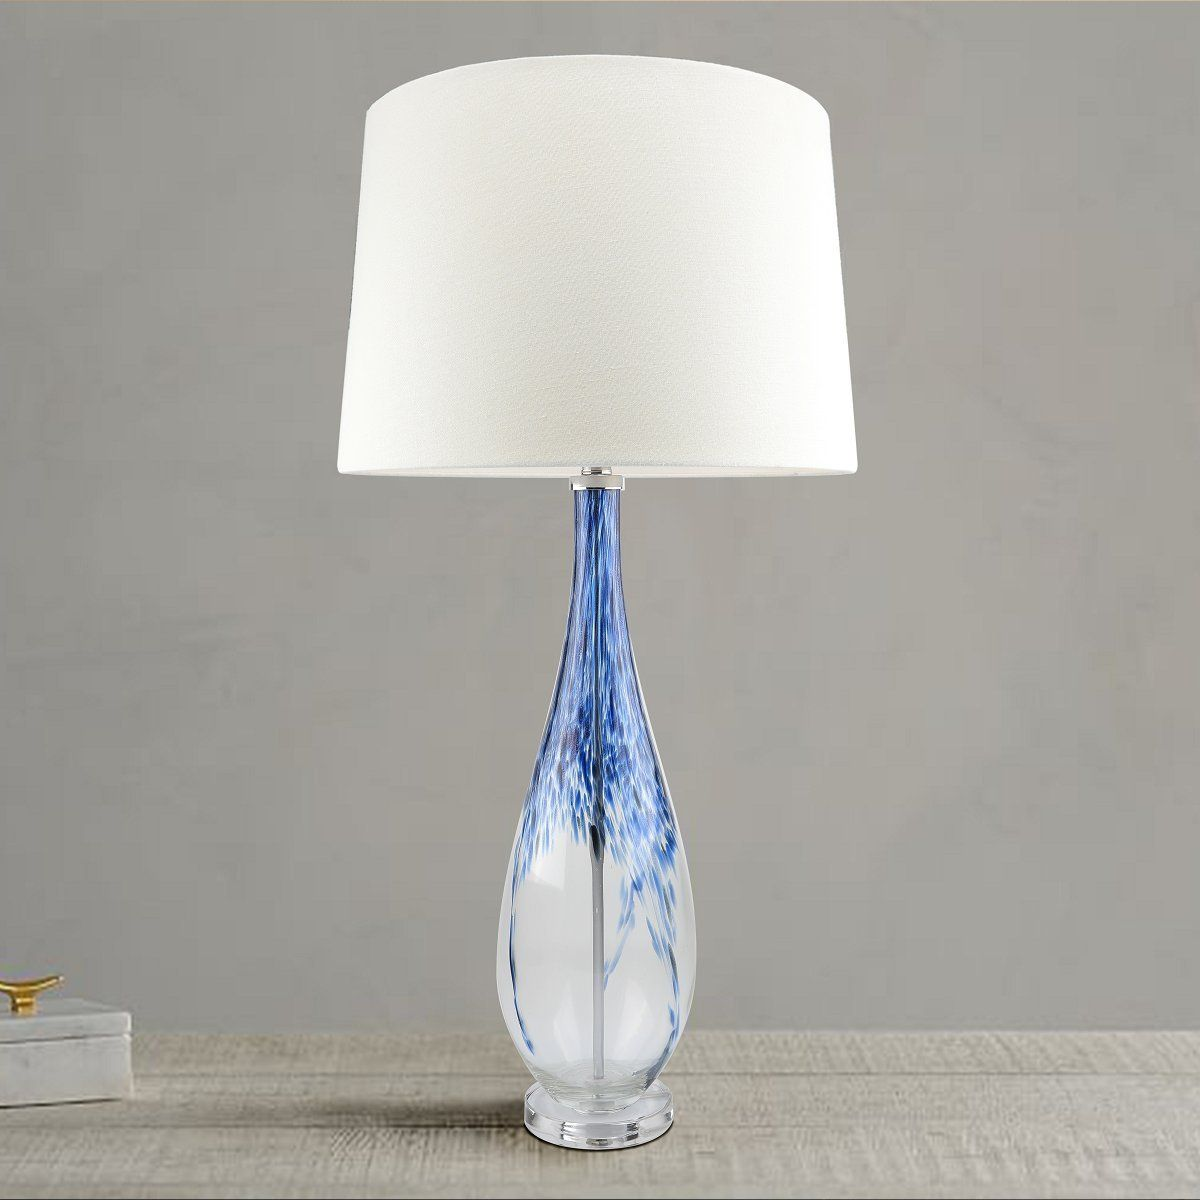 Contemporary Blue Glass Lamp 35 Inch Modern Art Glass Lamps With Ombre Aqua Base Handcrafted Crystal Coastal Lamps For Living Blue Glass Lamp Table Lamp Lamp